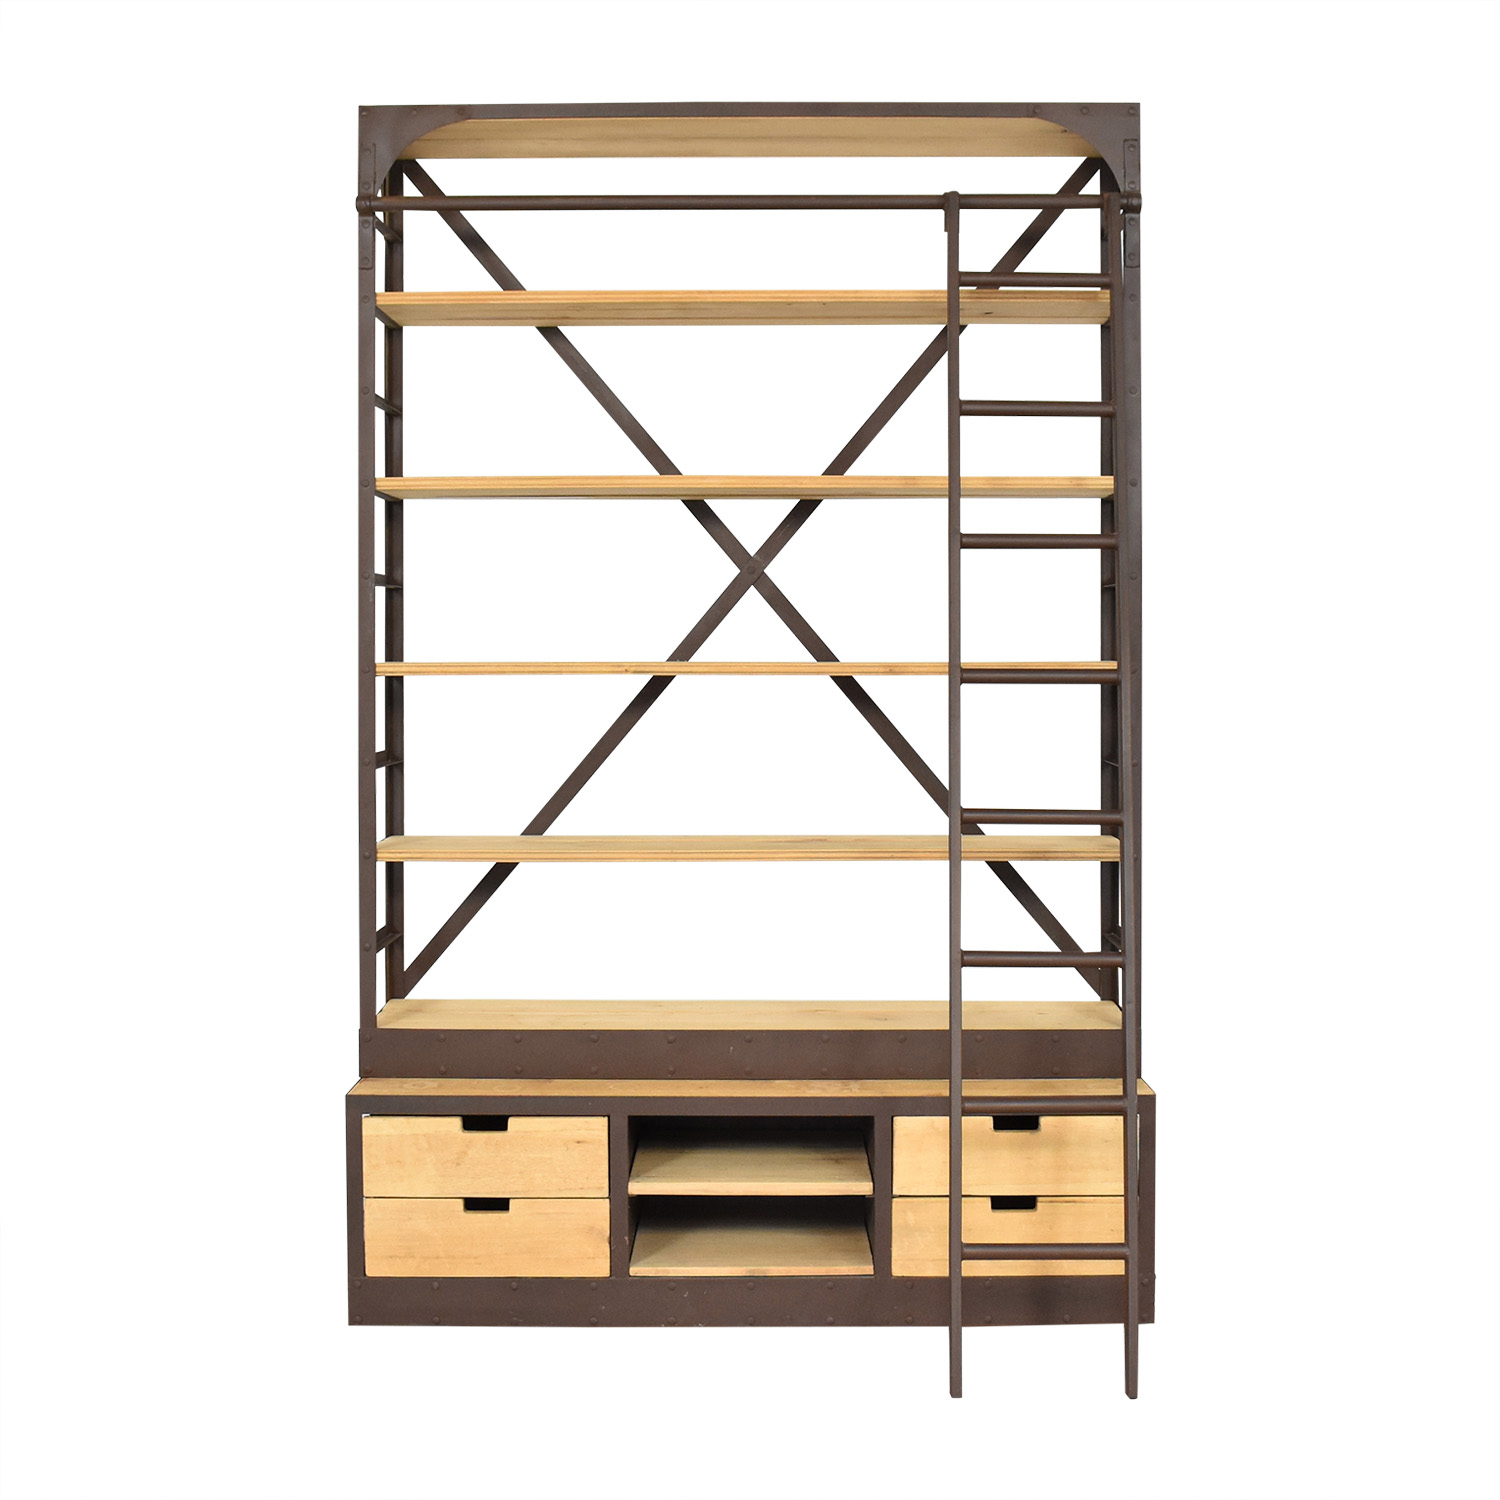 Restoration Hardware Restoration Hardware 1950s Dutch Shipyard Triple Shelving